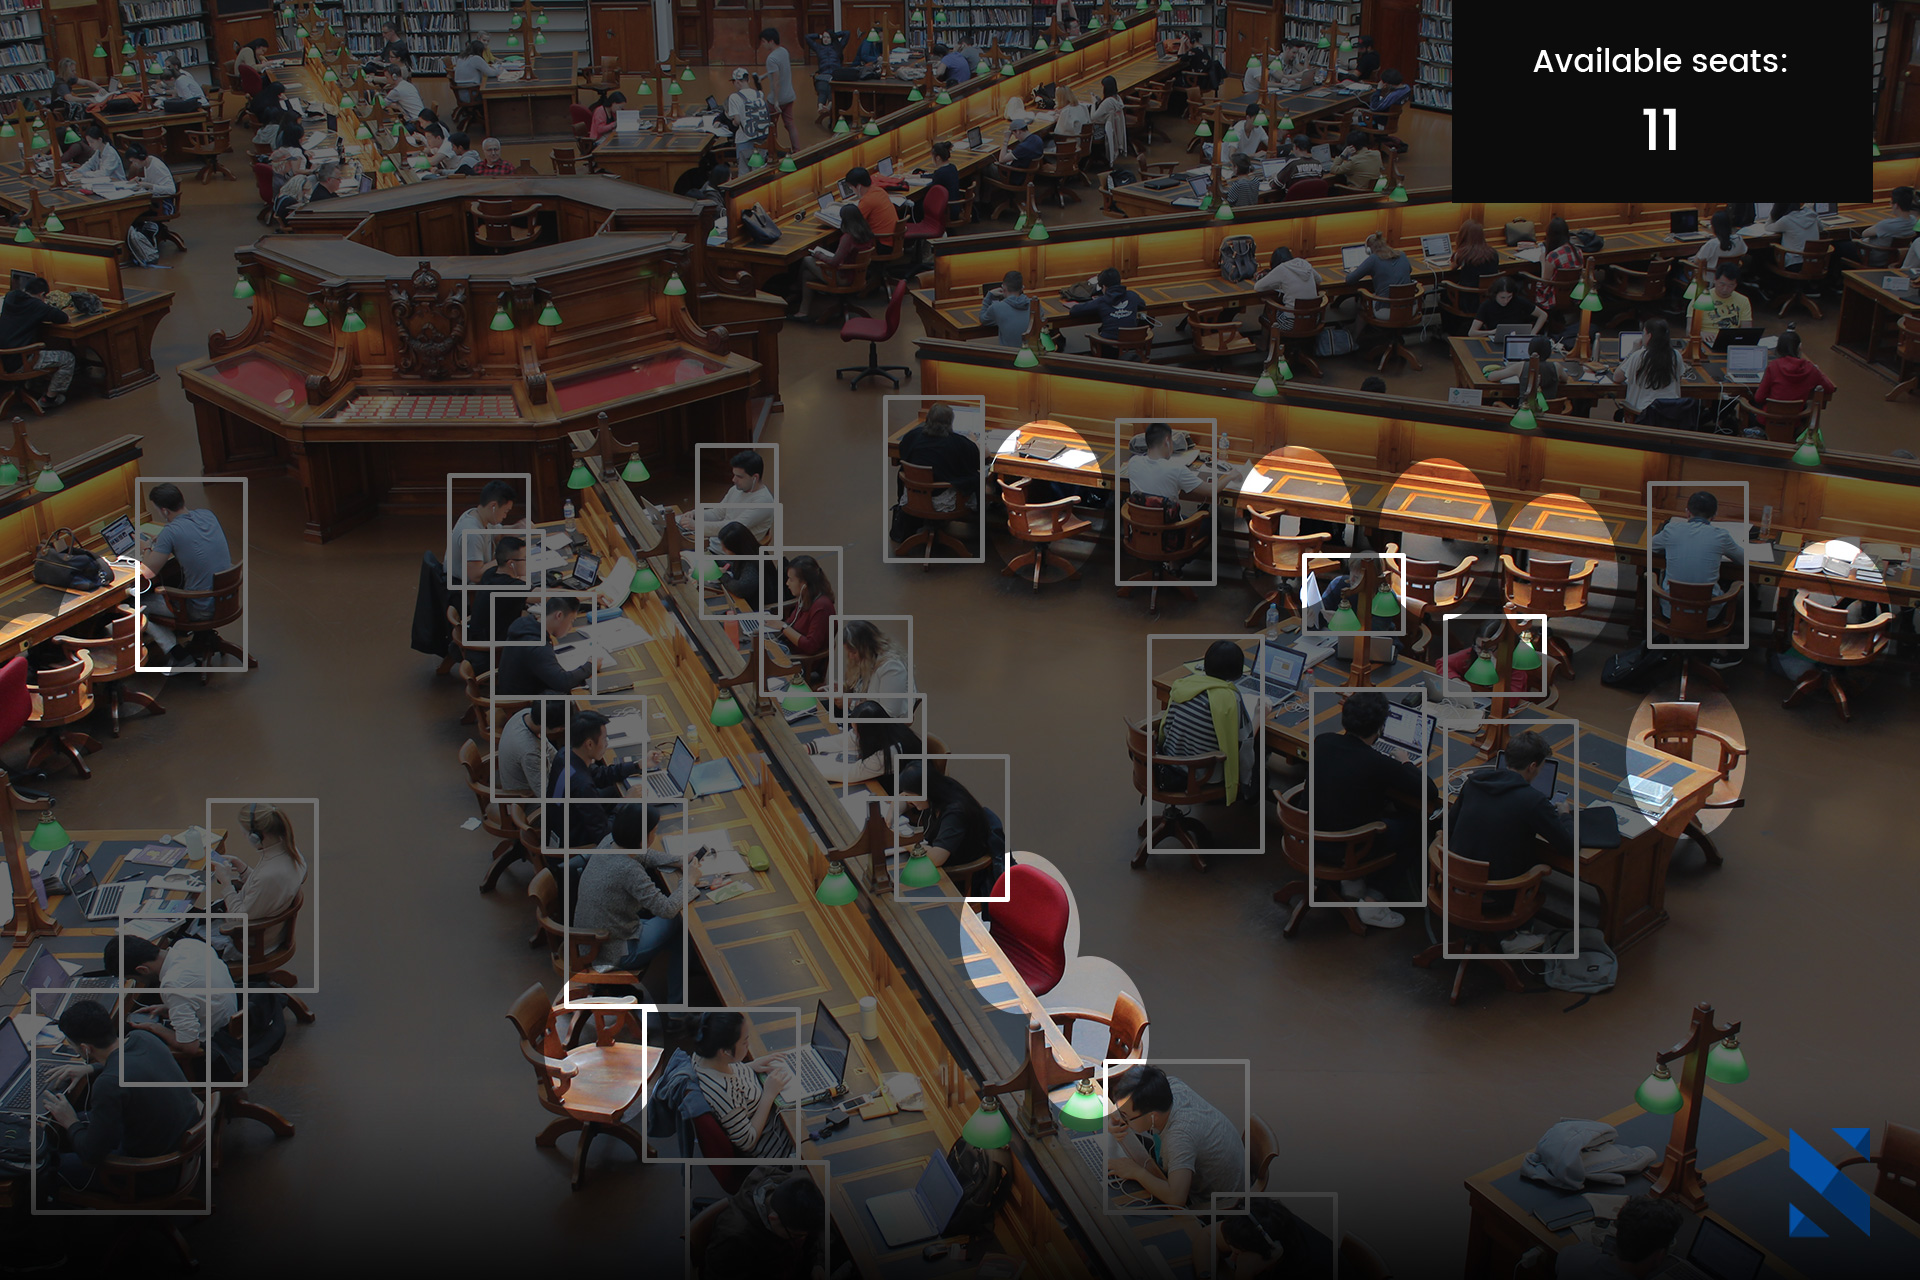 use case smart management analytics, detection of people presence and available seats